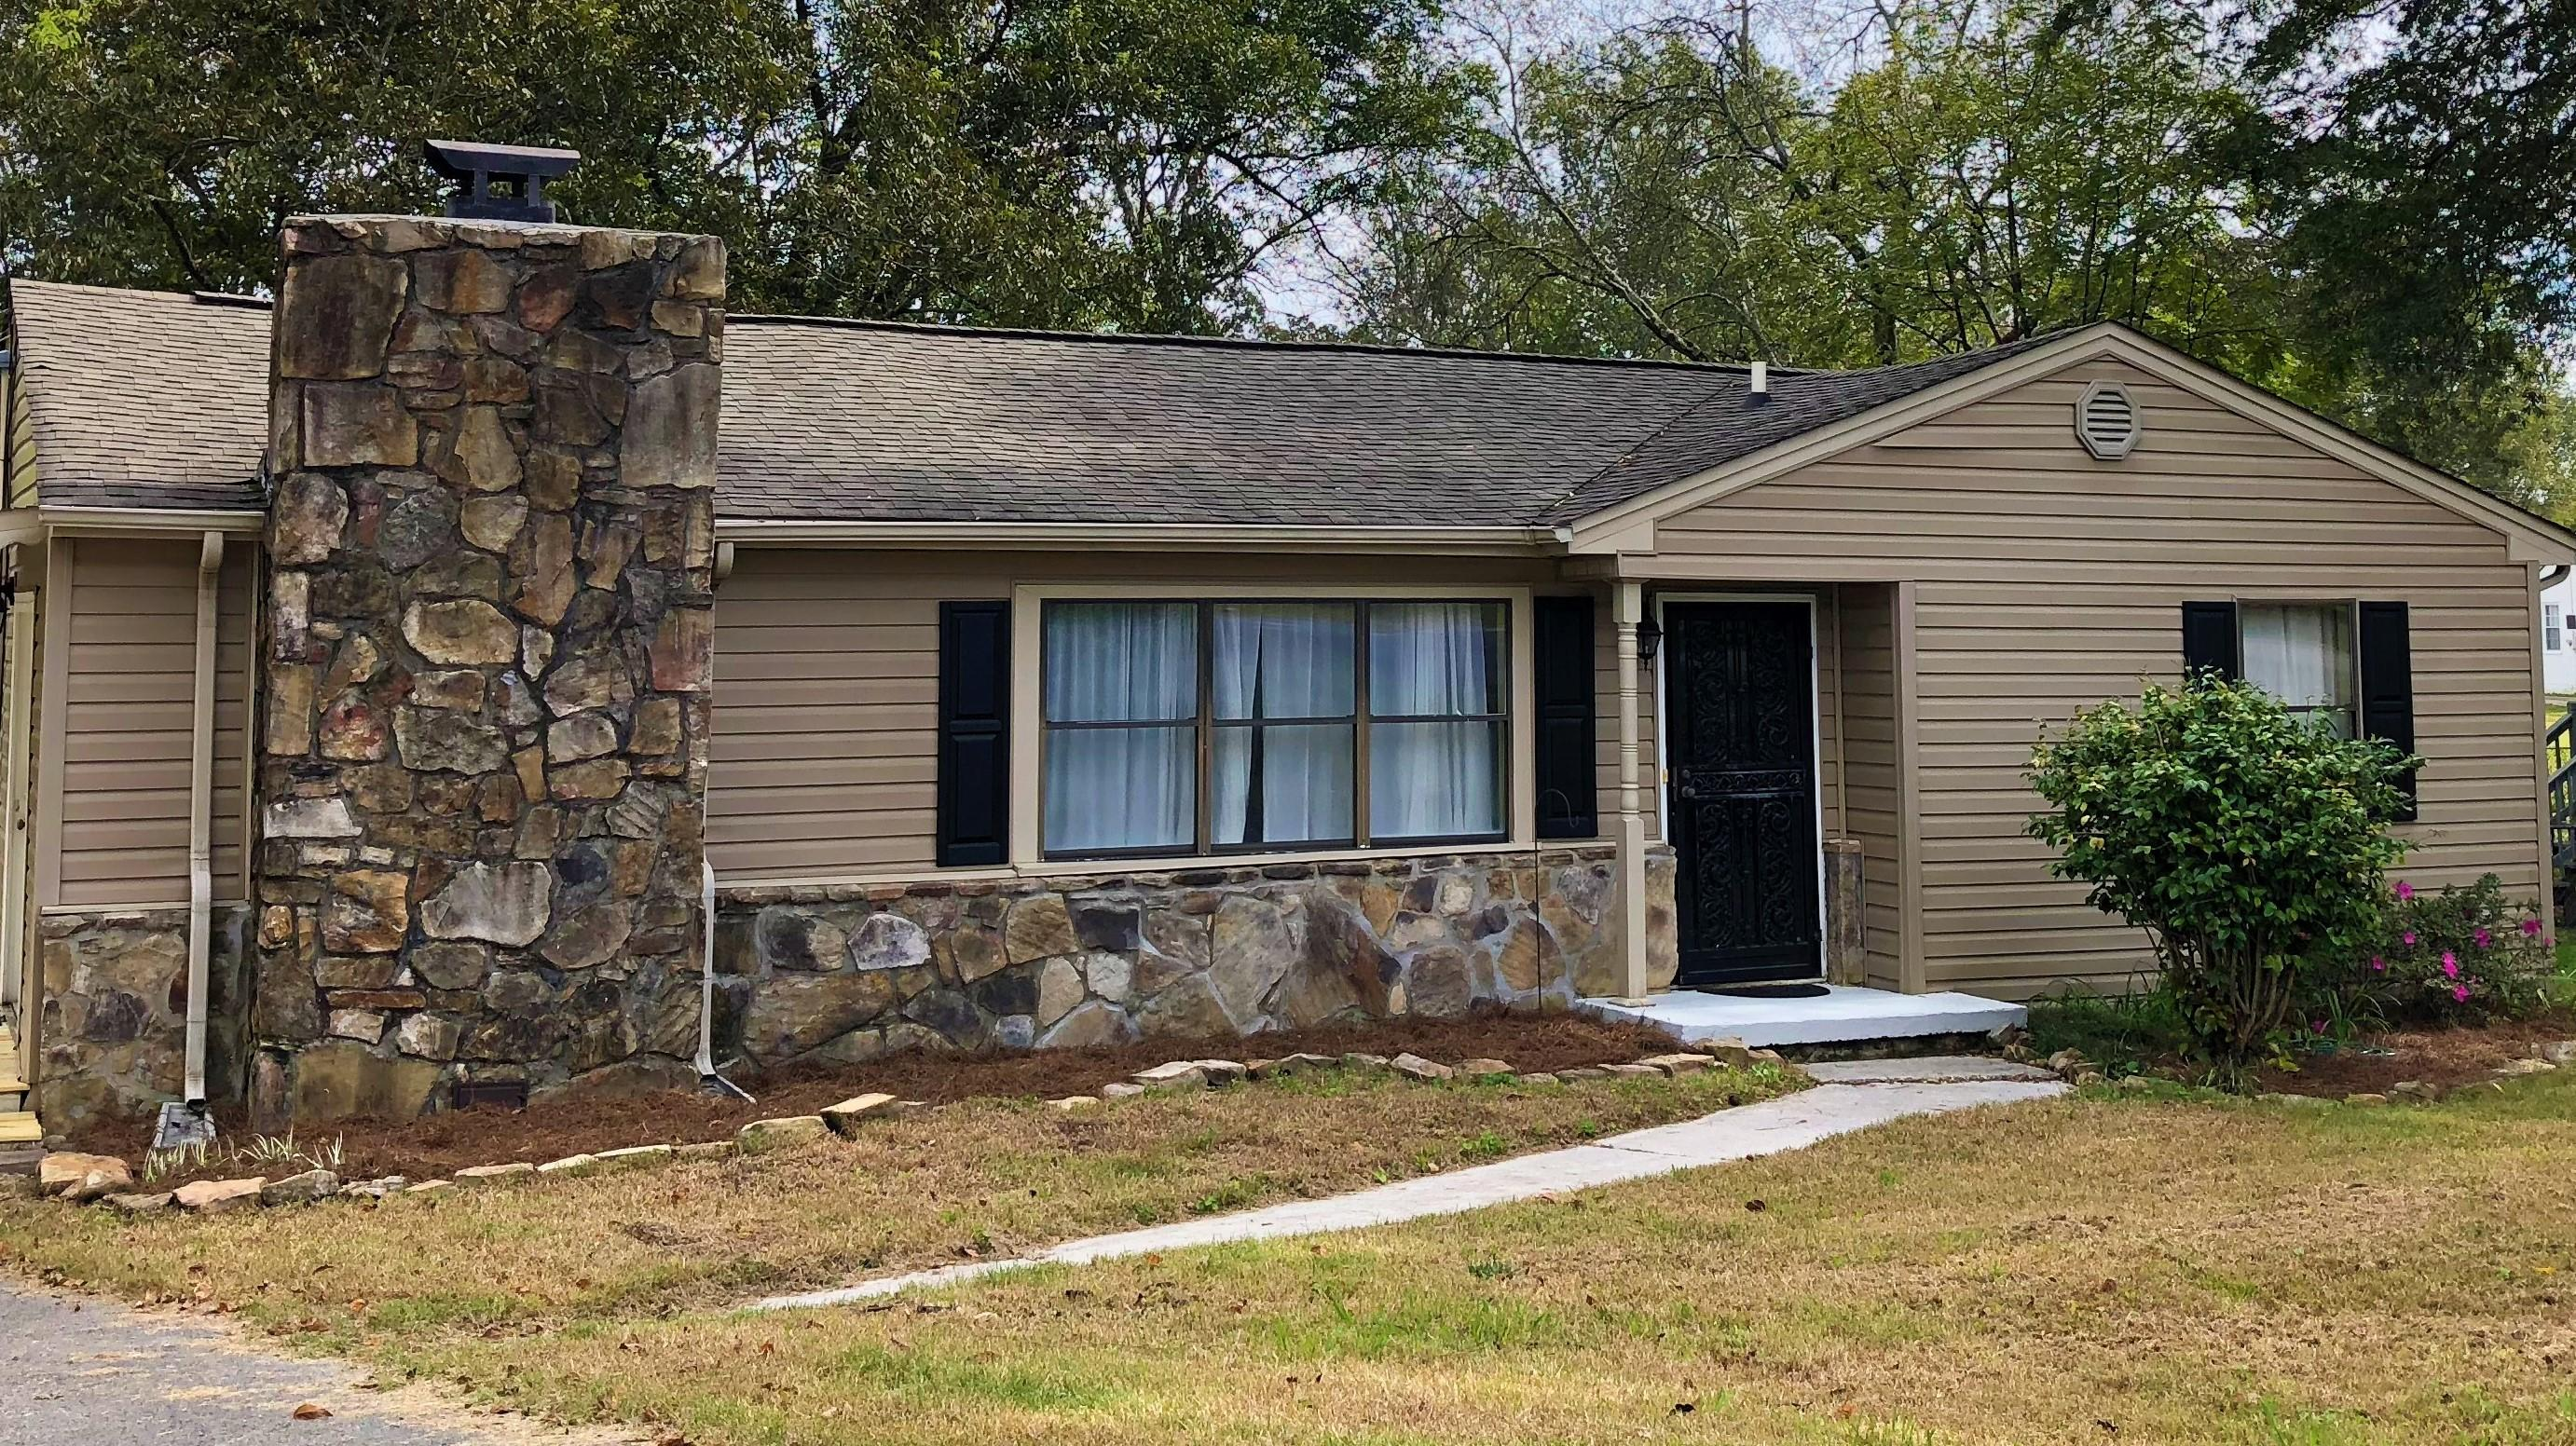 29 Polk Cir, Fort Oglethorpe, GA 30742